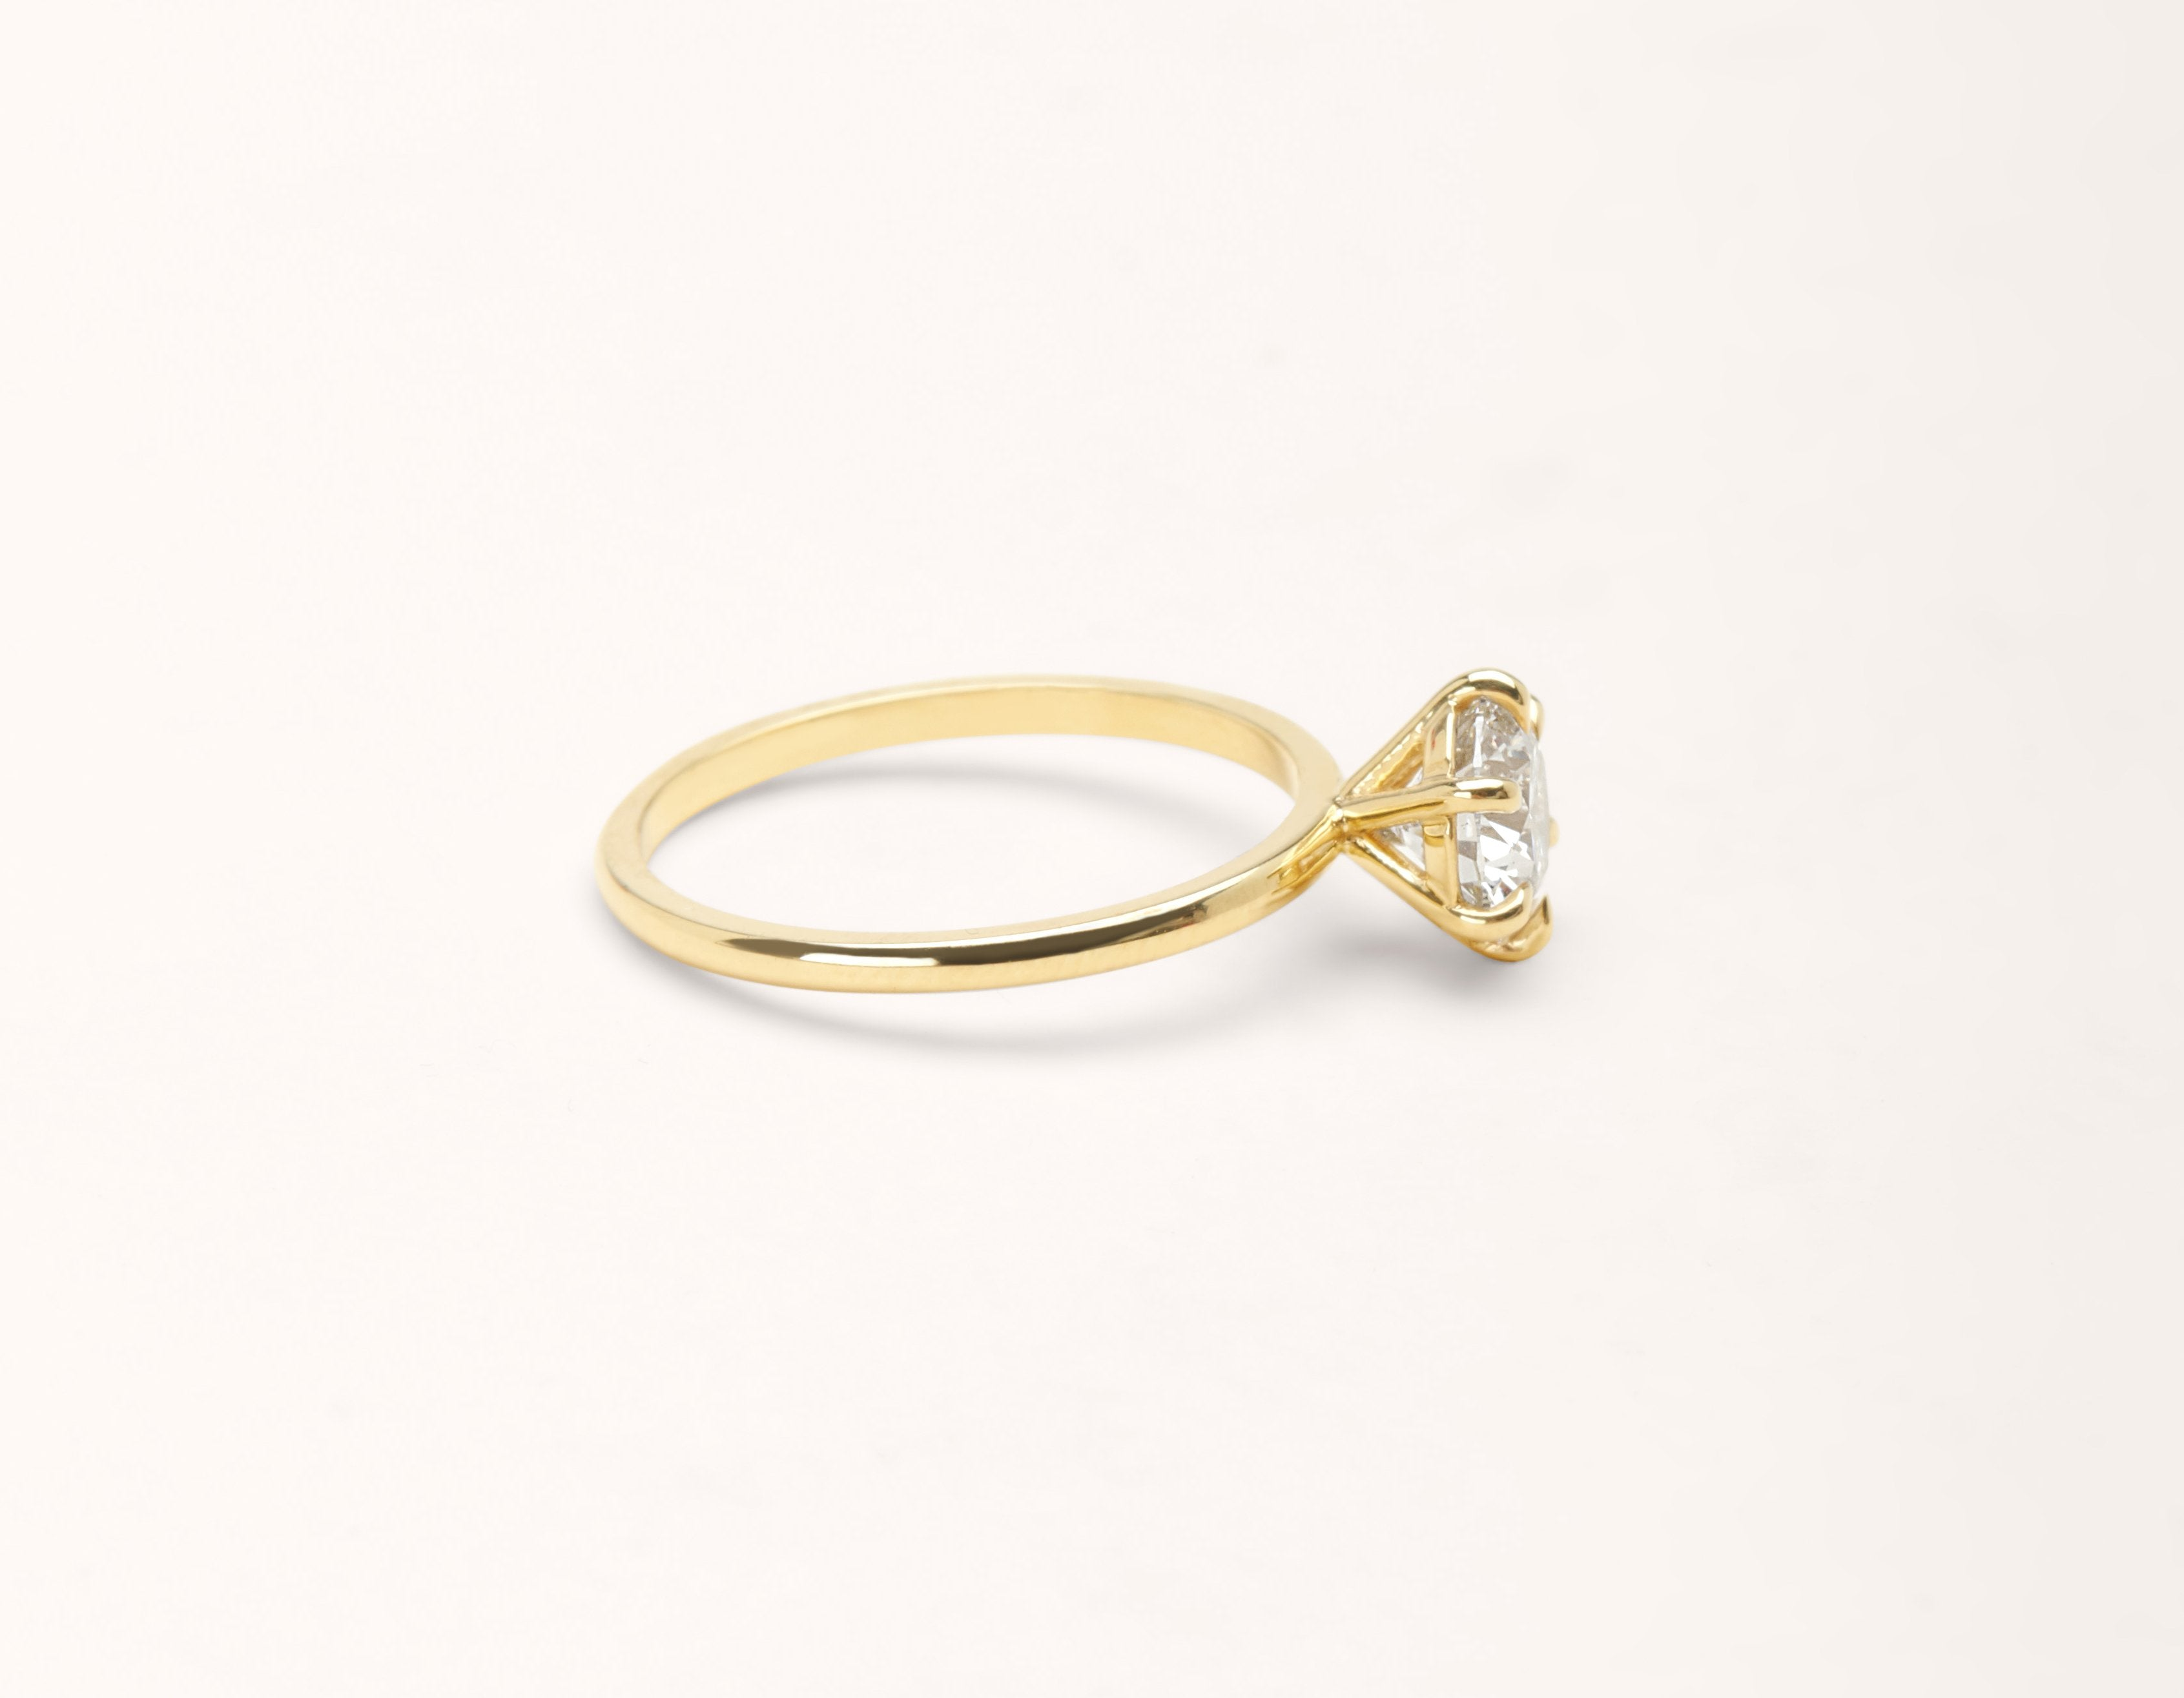 the solitaire engagement ring 18k yellow gold vrai oro wedding